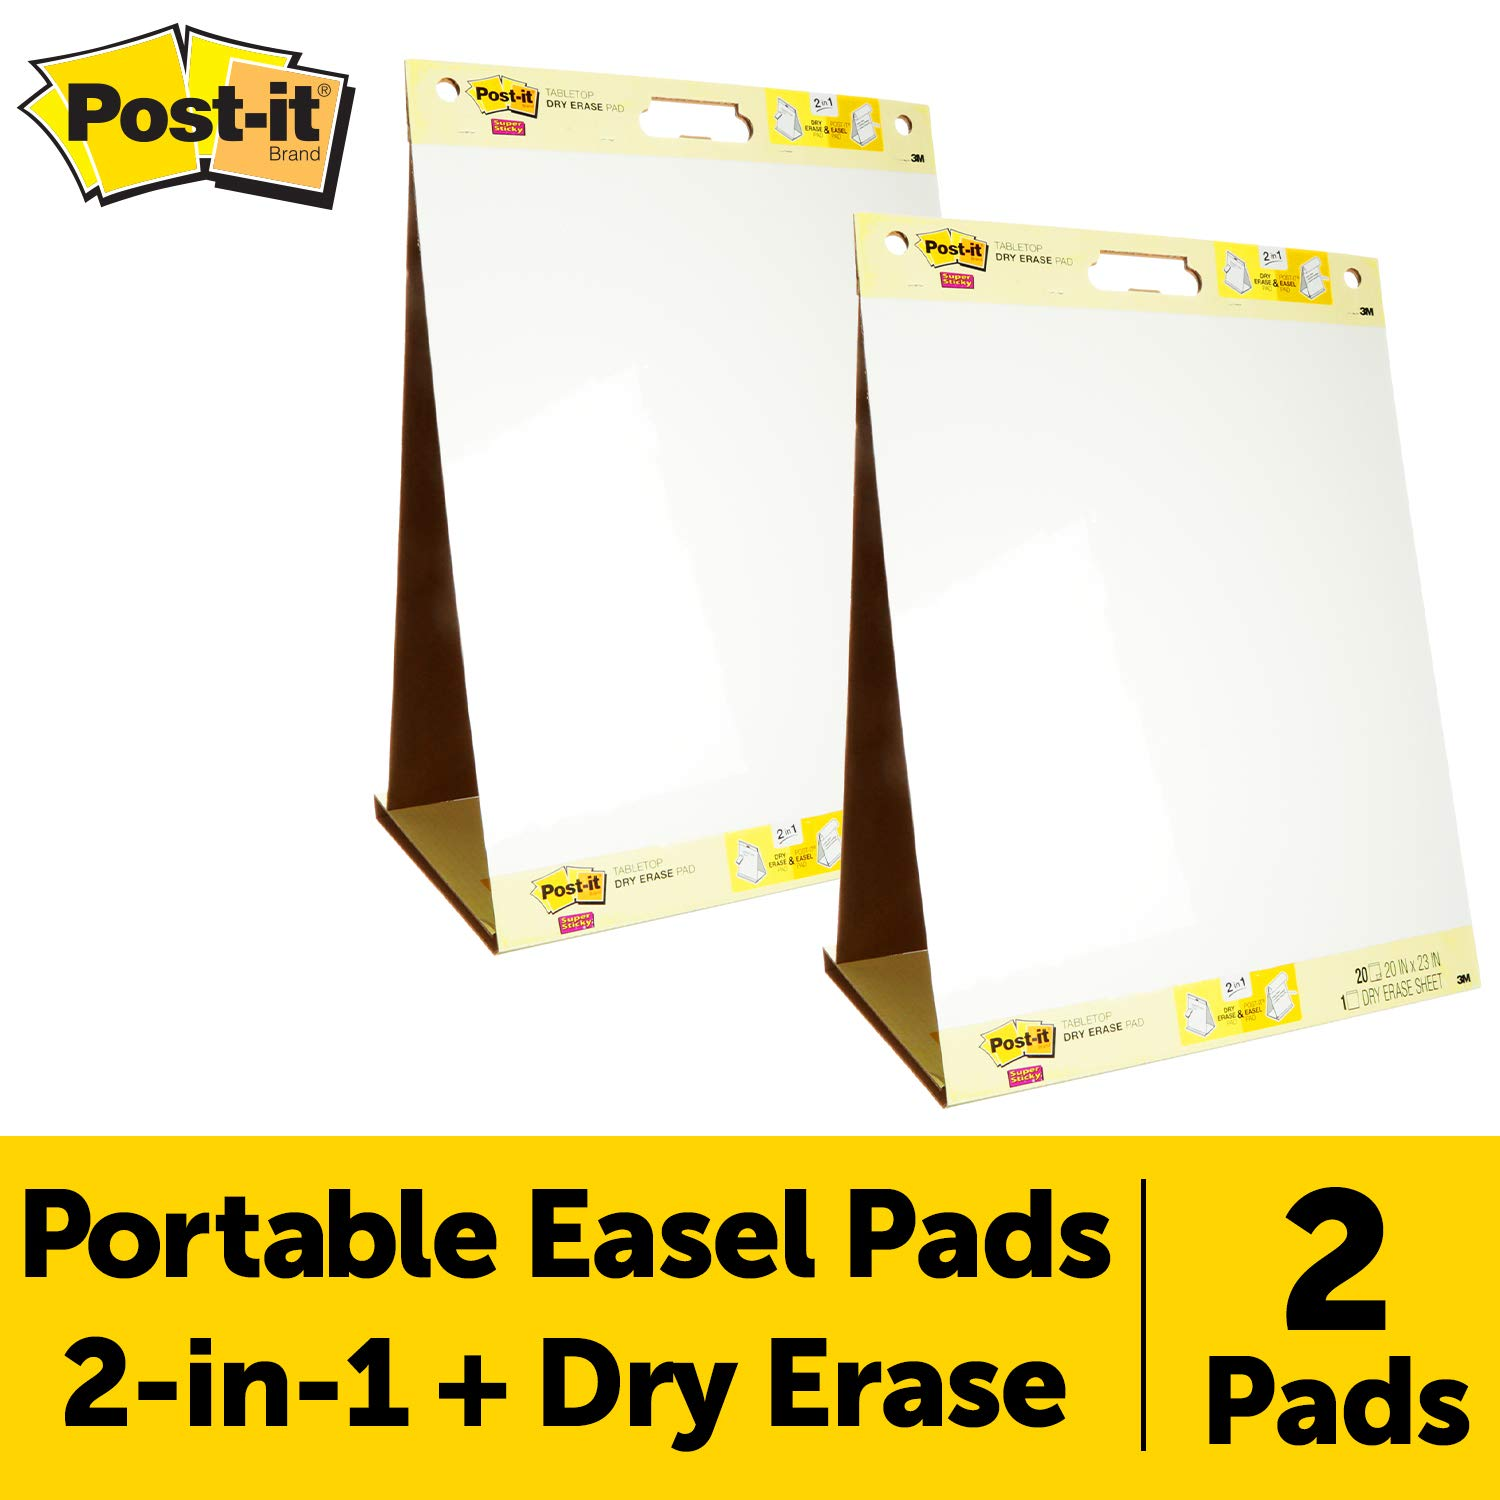 Post-it Super Sticky Portable Tabletop Easel Pad w/Dry Erase Panel 20x23 Inches, 20 Sheets/Pad, 2 Pads, One Side White Self Stick Flip Chart Paper, One Side Dry Erase, Built-in Stand (563DE VAD 2PK) by Post-it